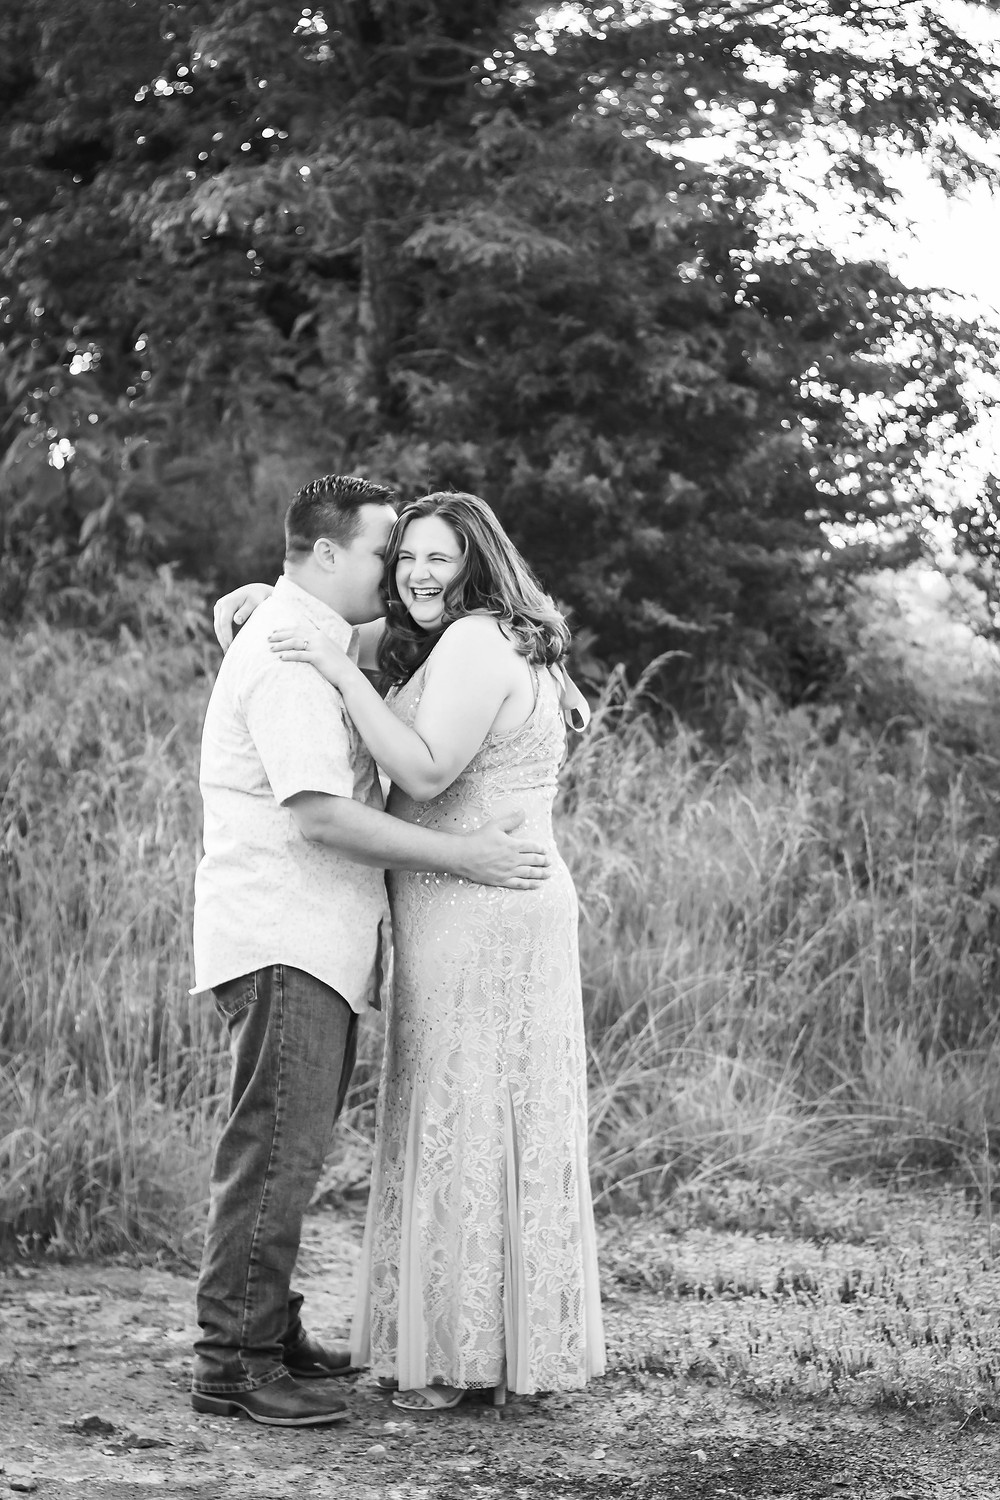 Black and white cute couple laughing in a field in Lewisburg, Tennessee